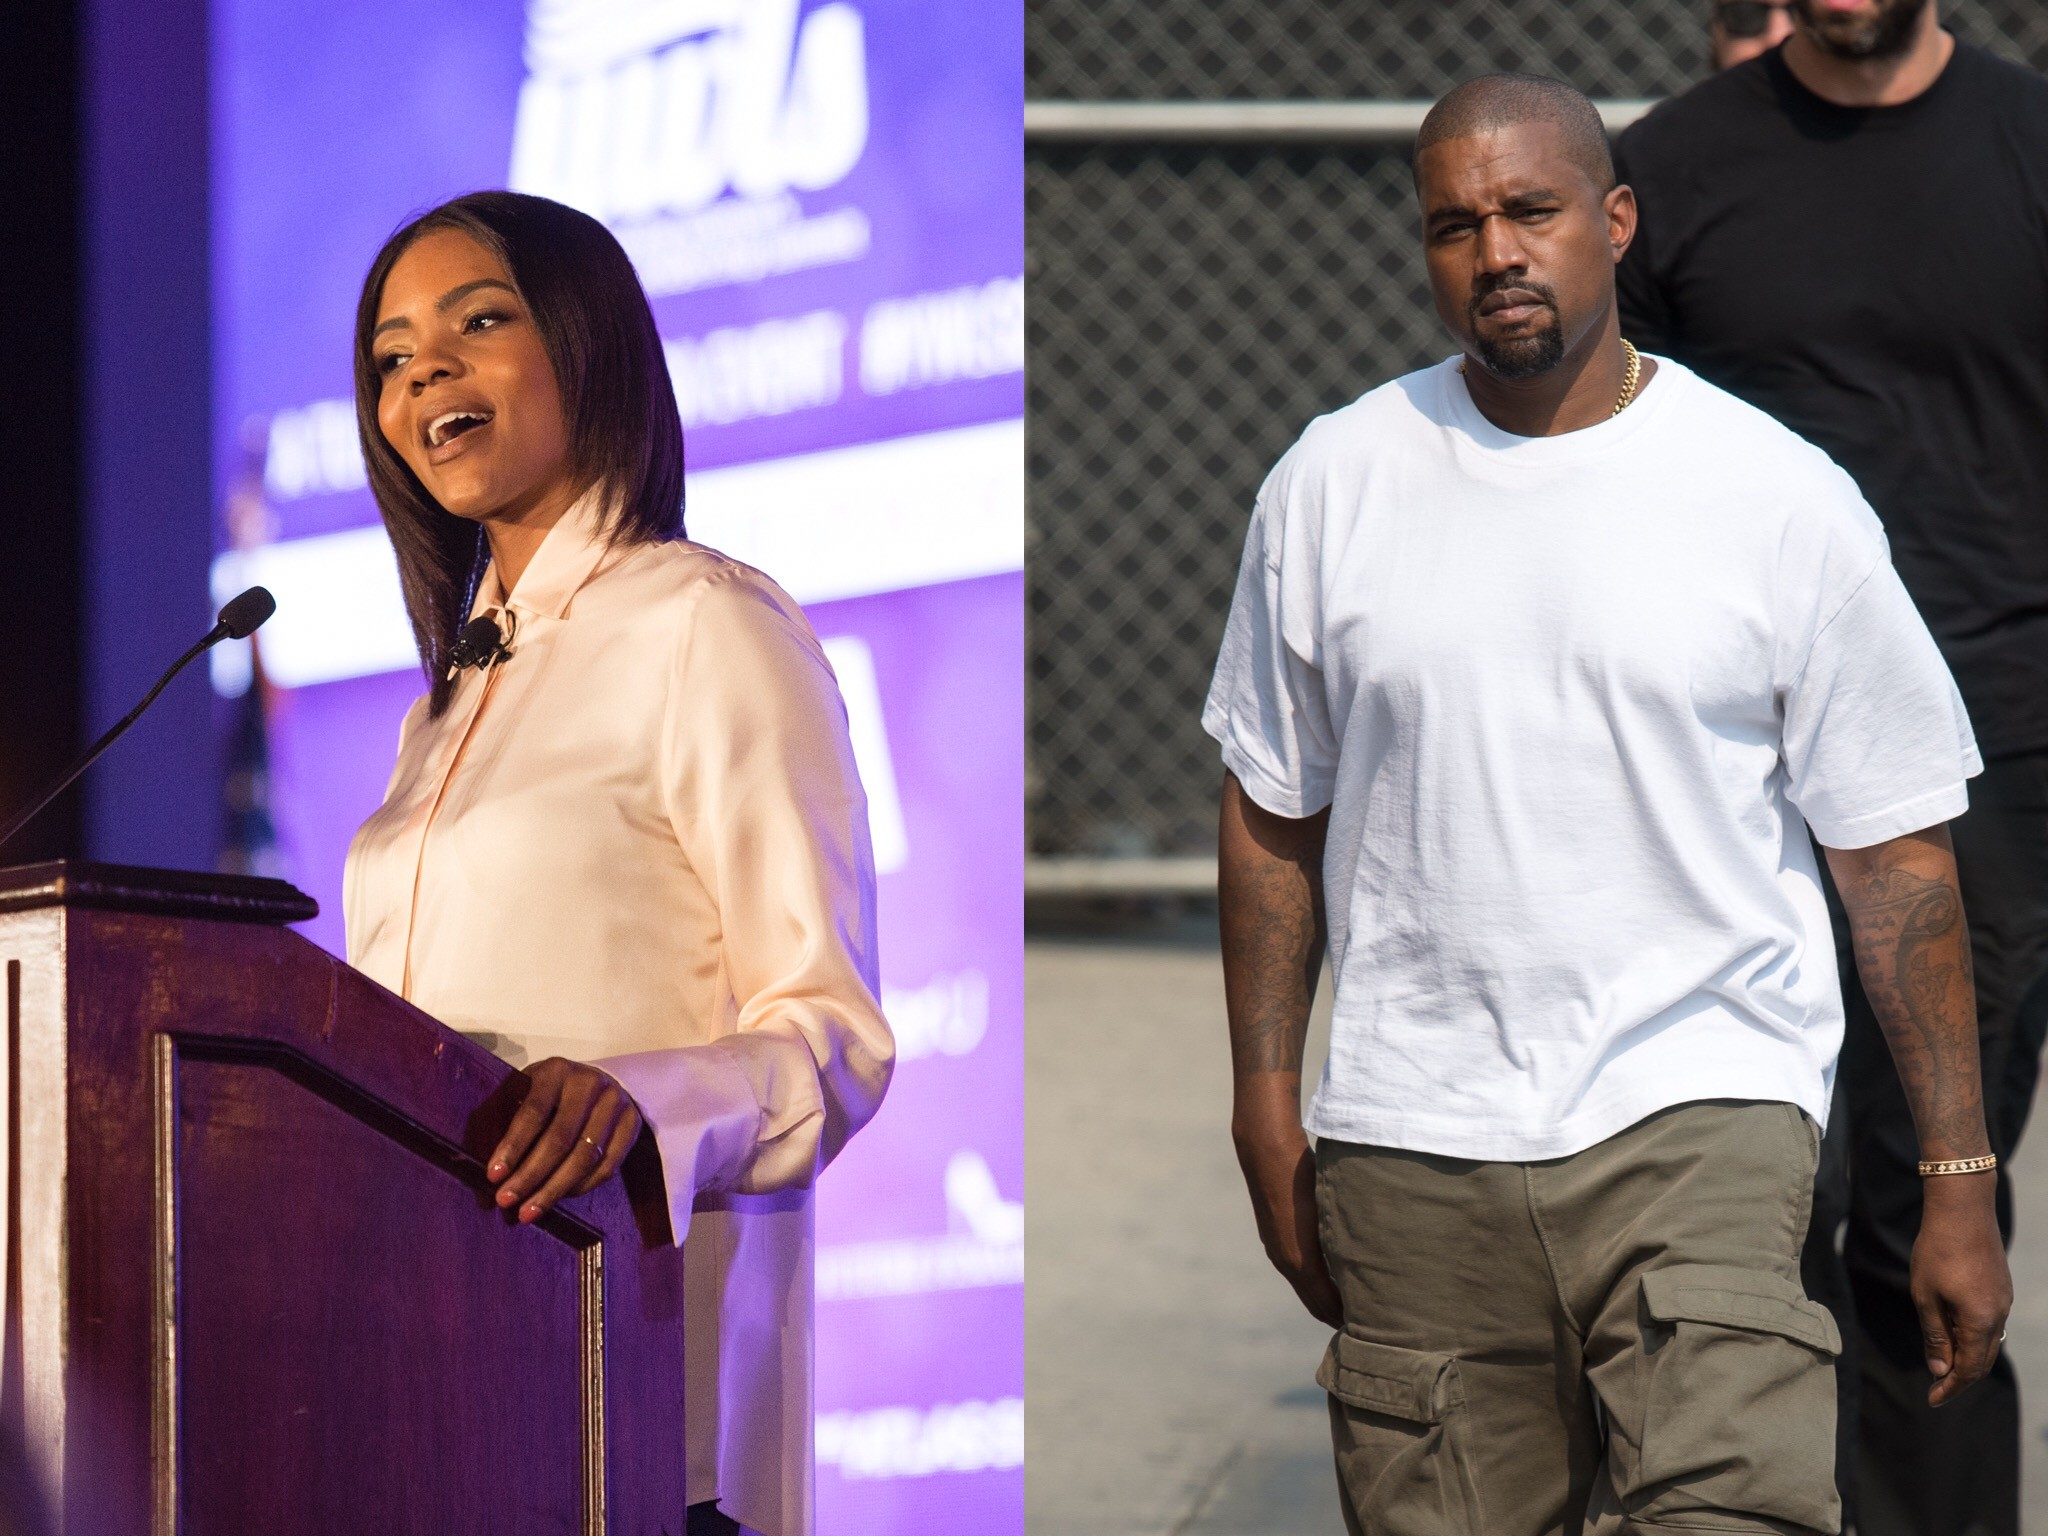 Candace Owens Issues An Apology To Kanye West Over 'Blexit' Controversy